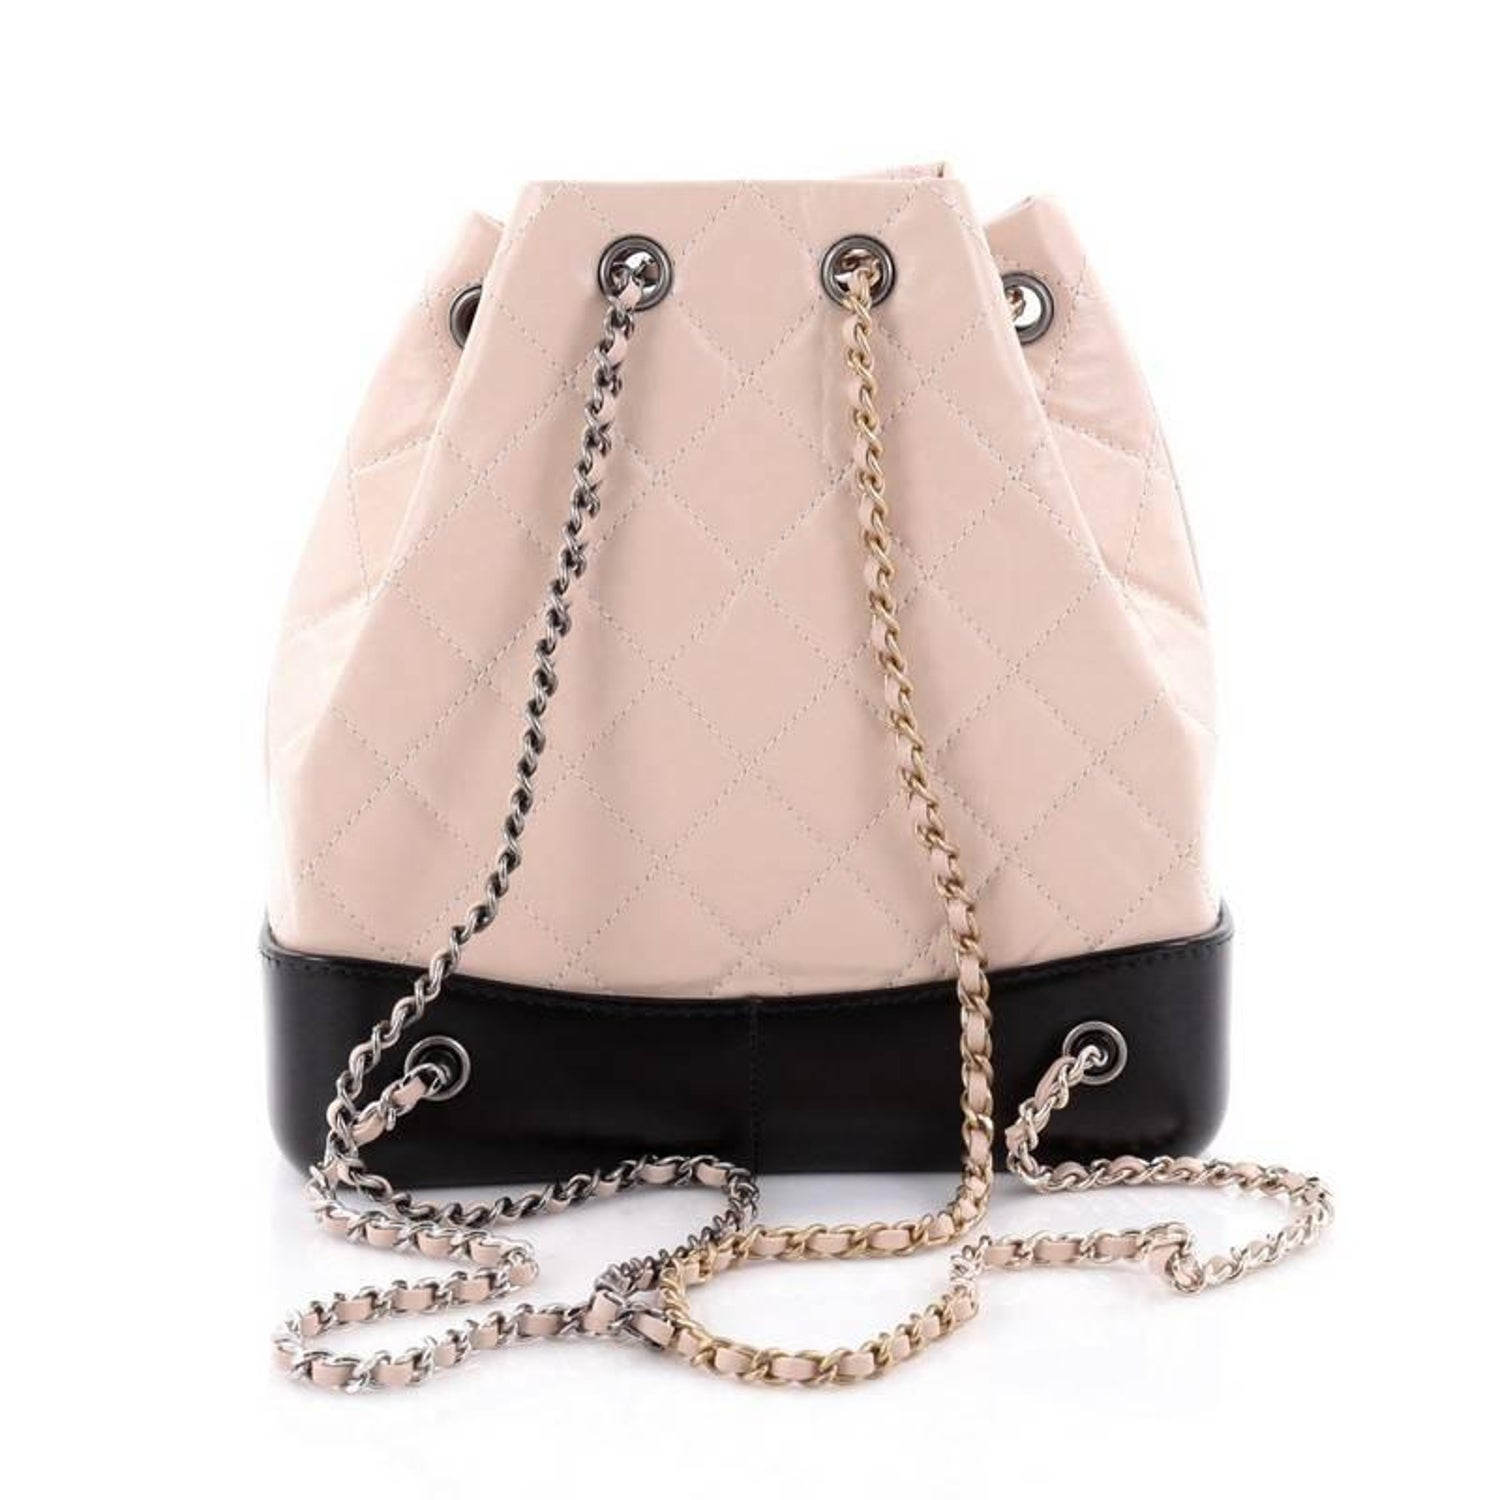 7cd536416175 Chanel Gabrielle Backpack Quilted Calfskin Small at 1stdibs